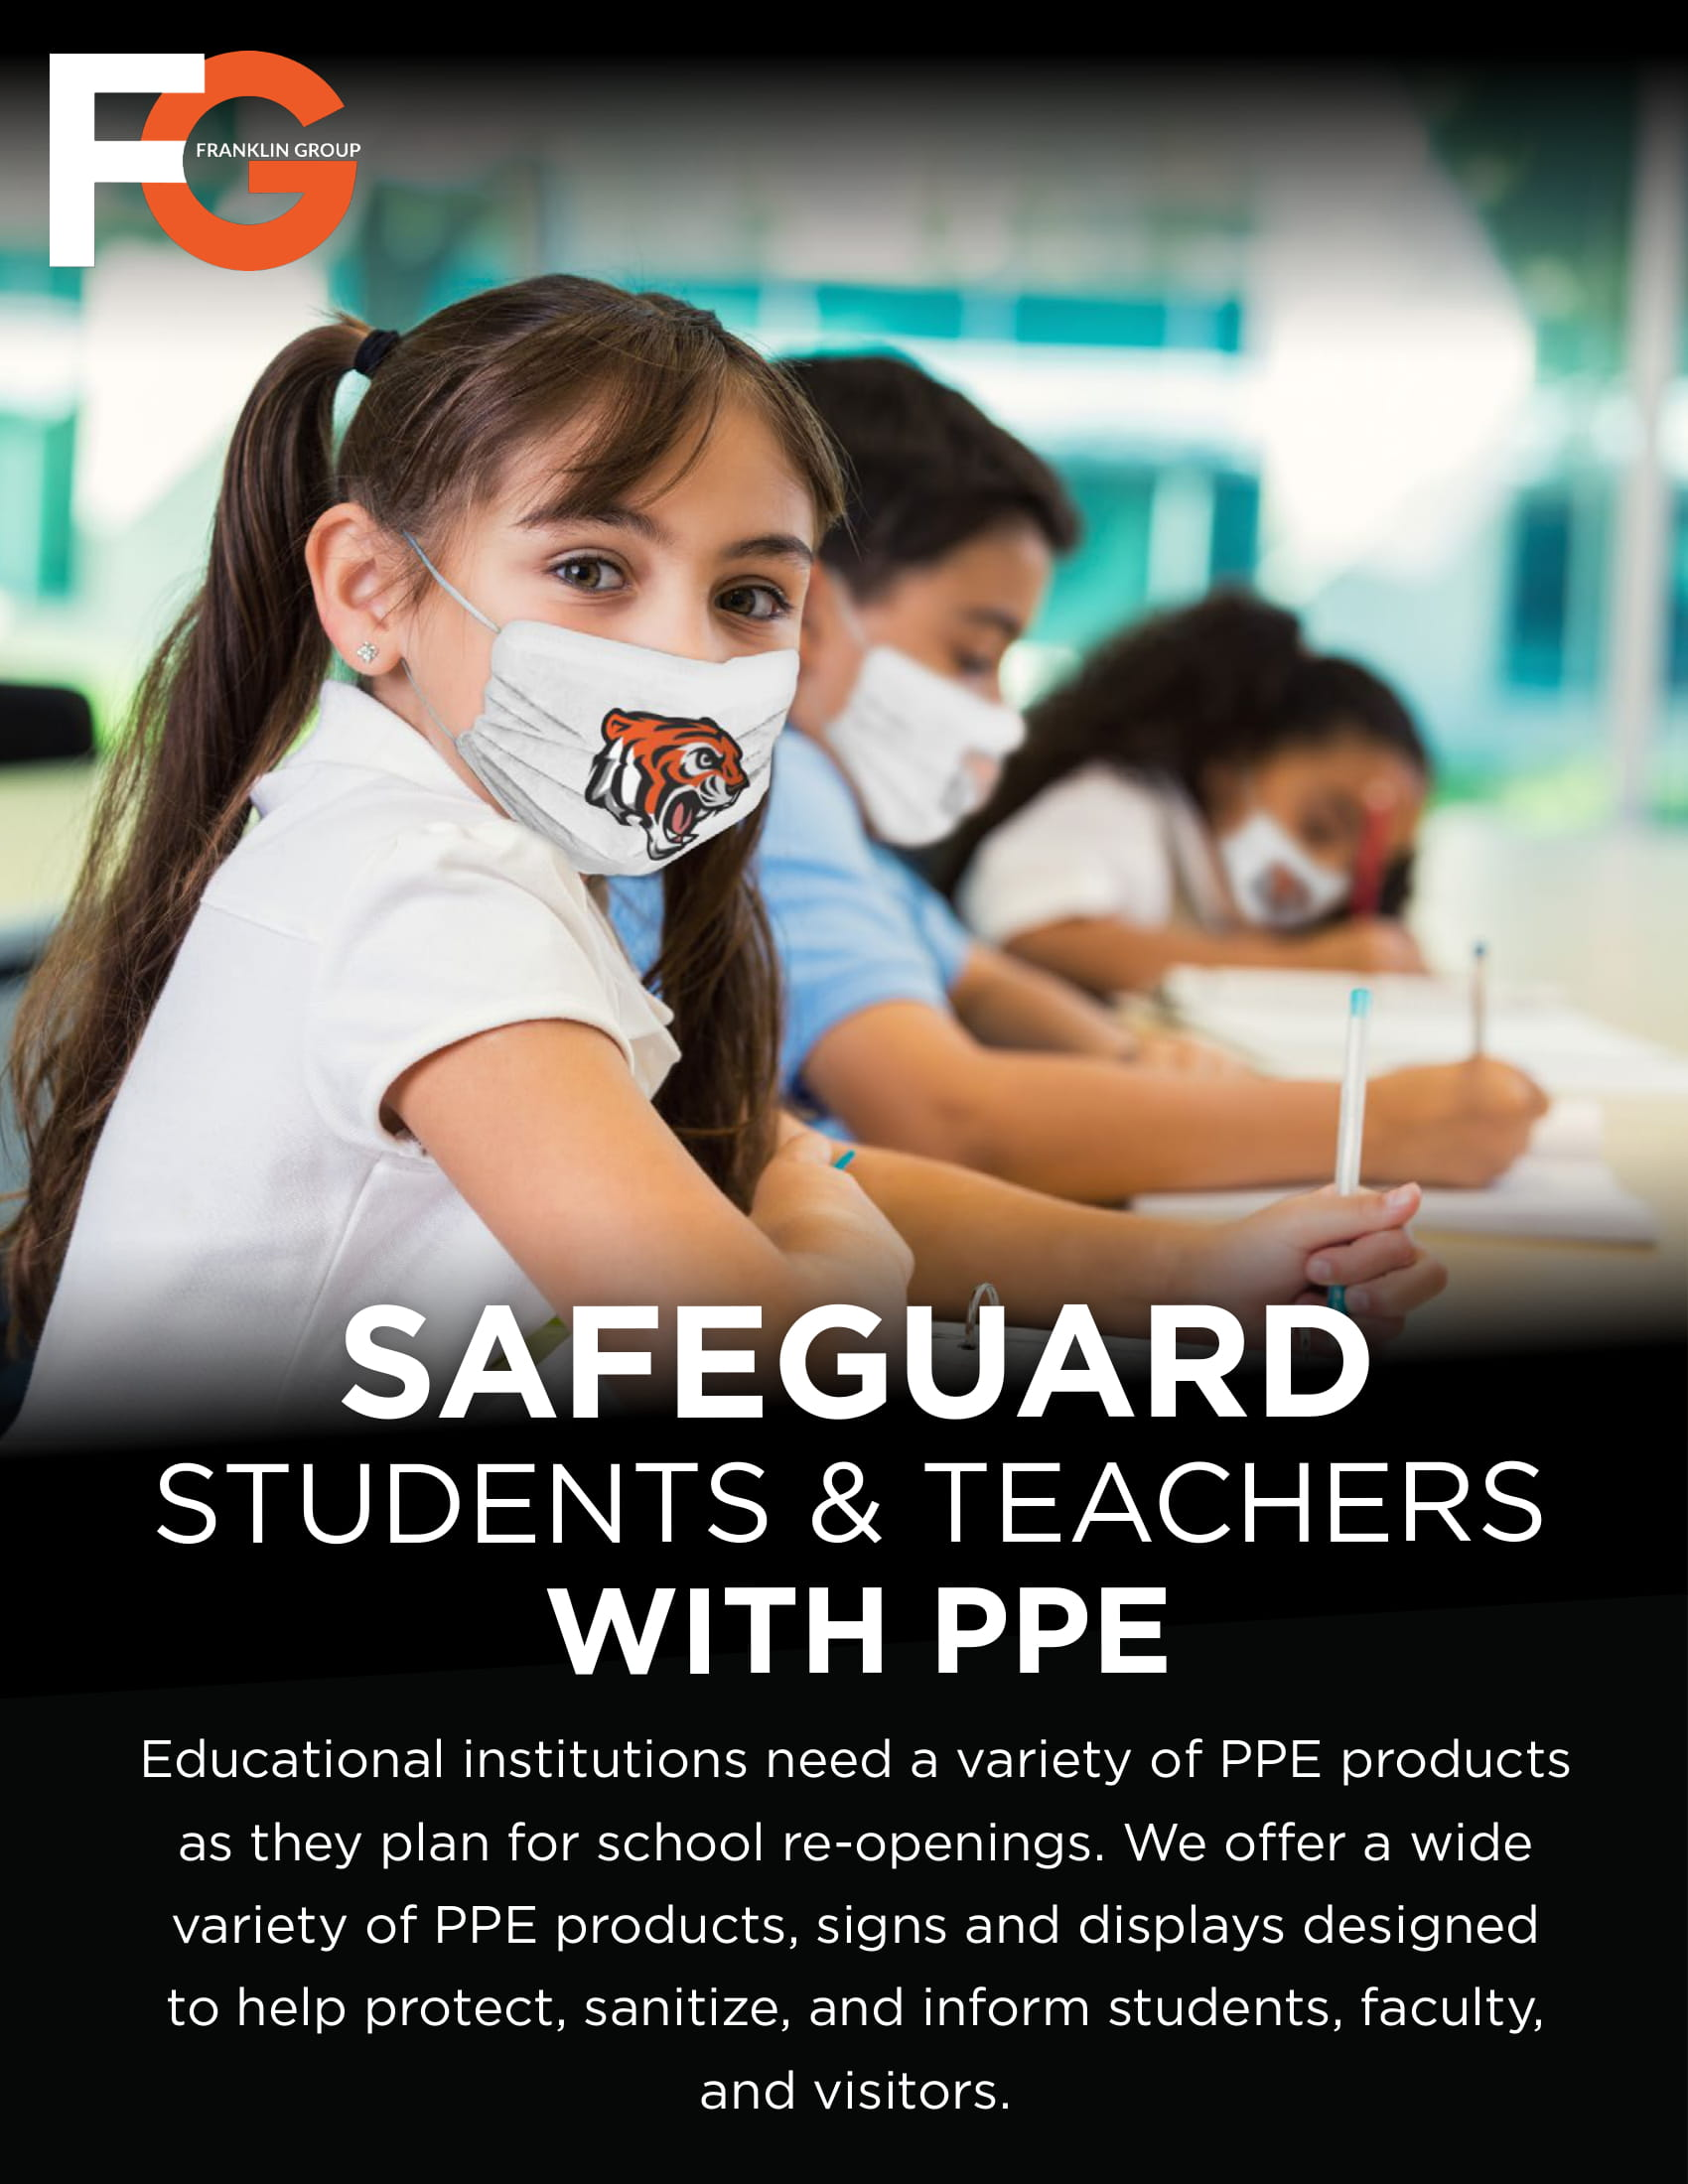 Safeguard Schools with PPE